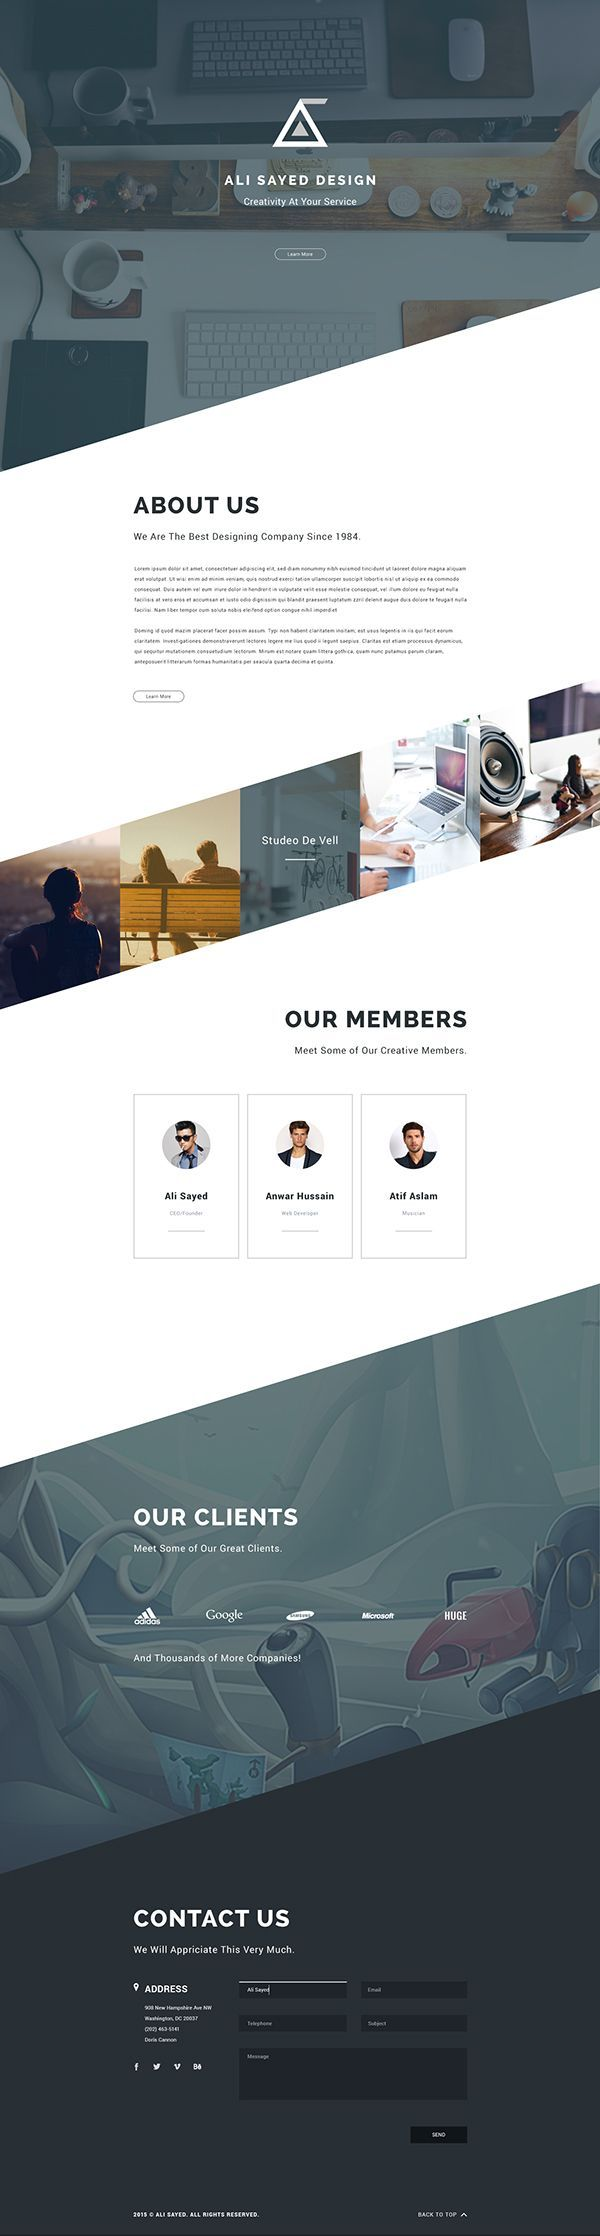 Angle / diagonal Business Agency Web Template Design. Web Design. Opus Online.